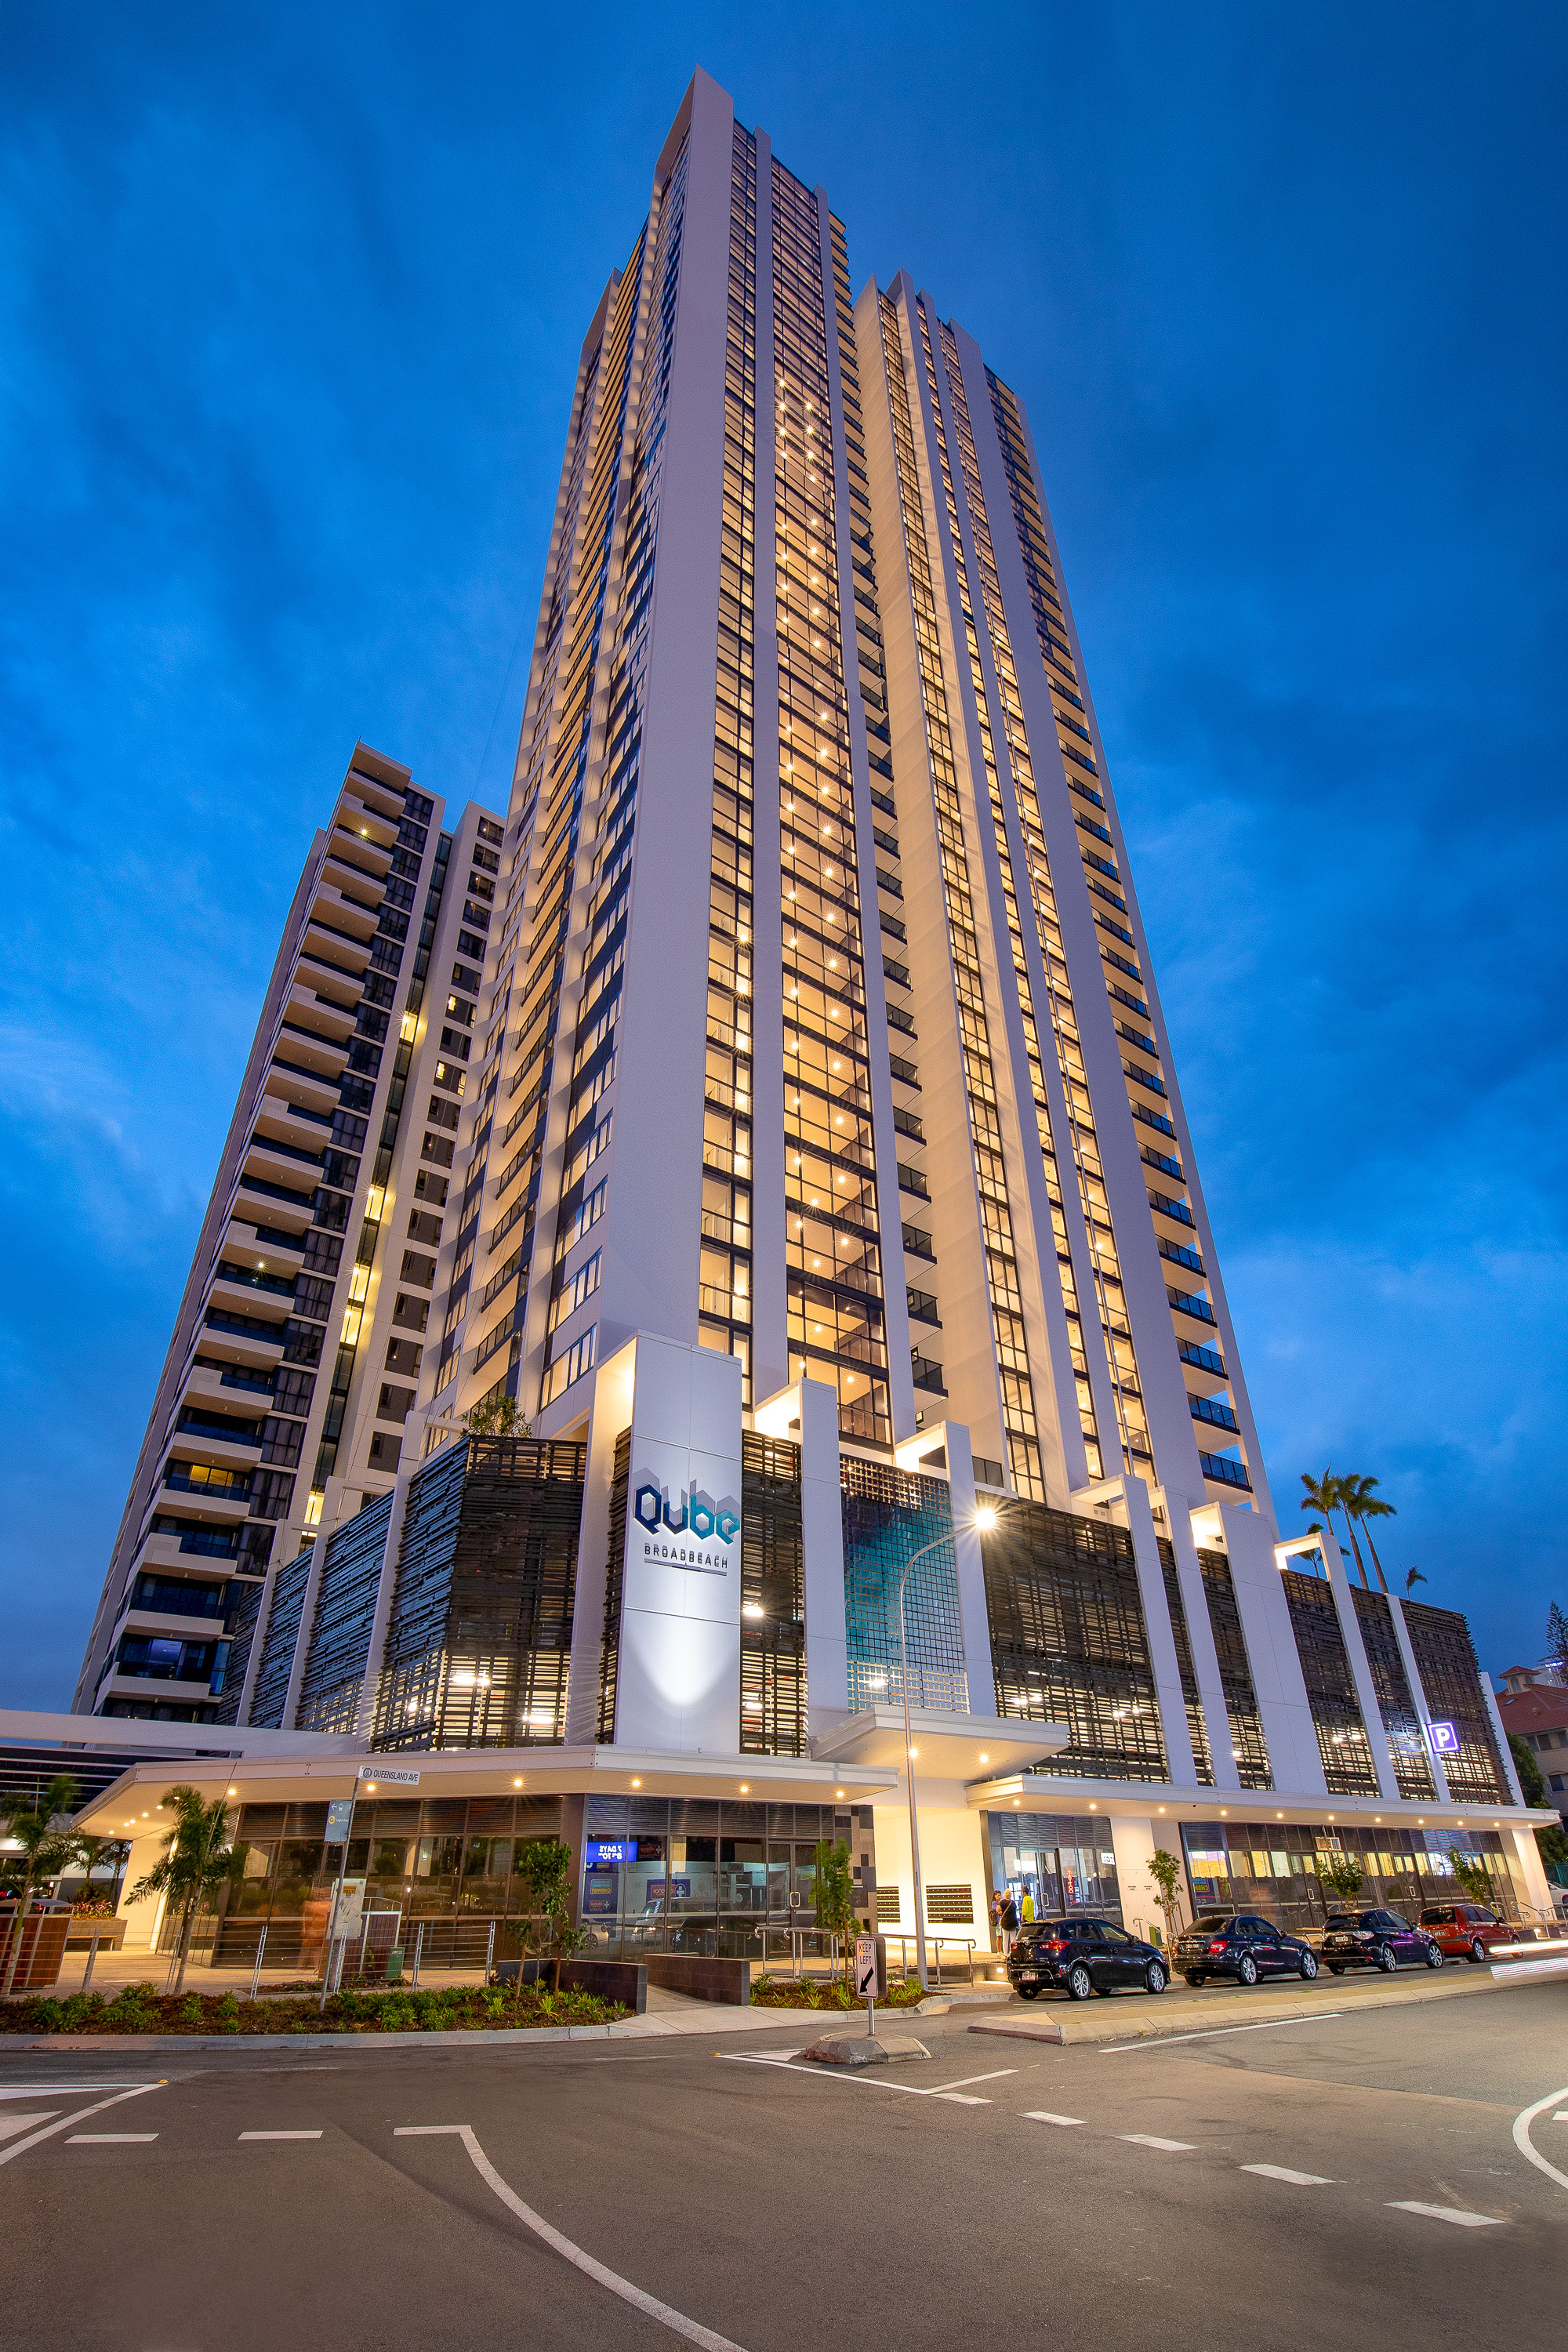 Qube Resort Apartments Offer Luxury Broadbeach Accommodation